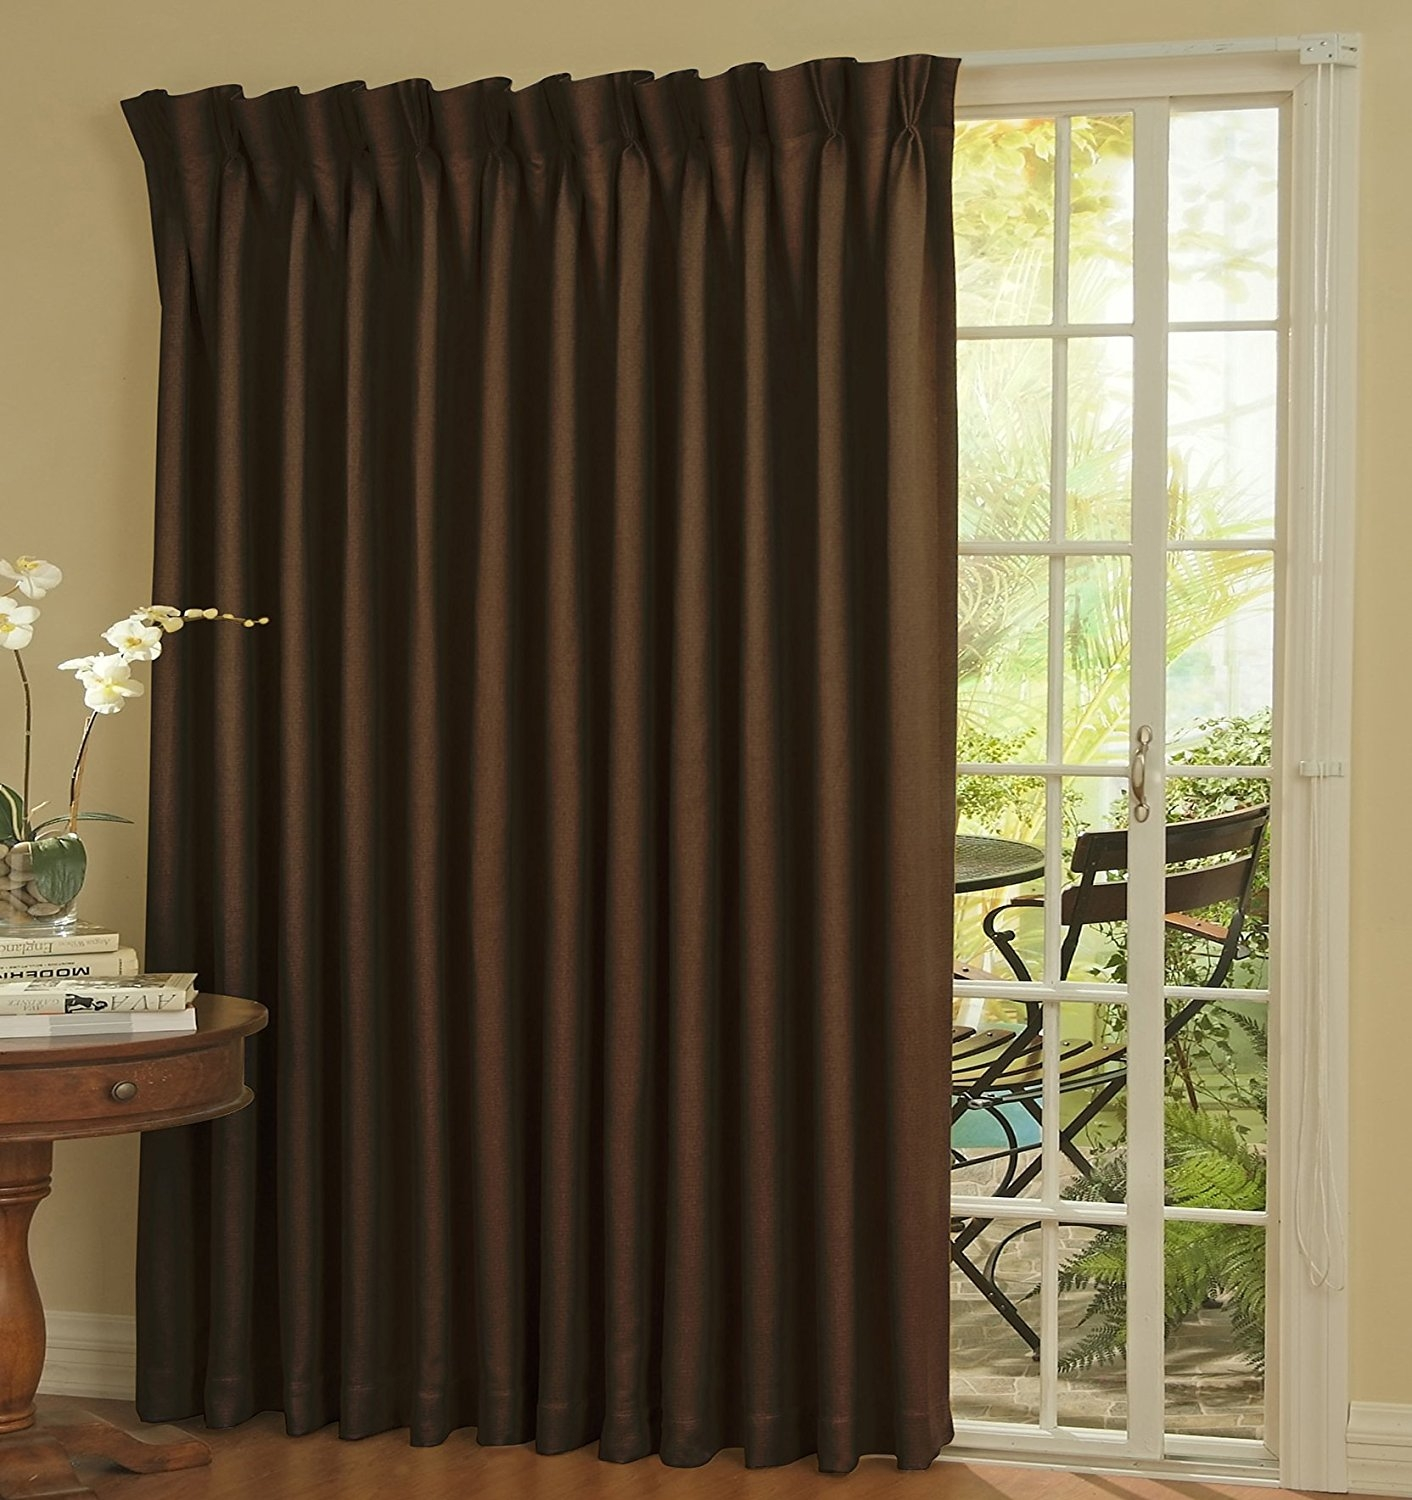 Amazon Eclipse Curtains Thermal Blackout 100 X 84 Inch Inside Sliding Glass Door Curtains (View 8 of 25)